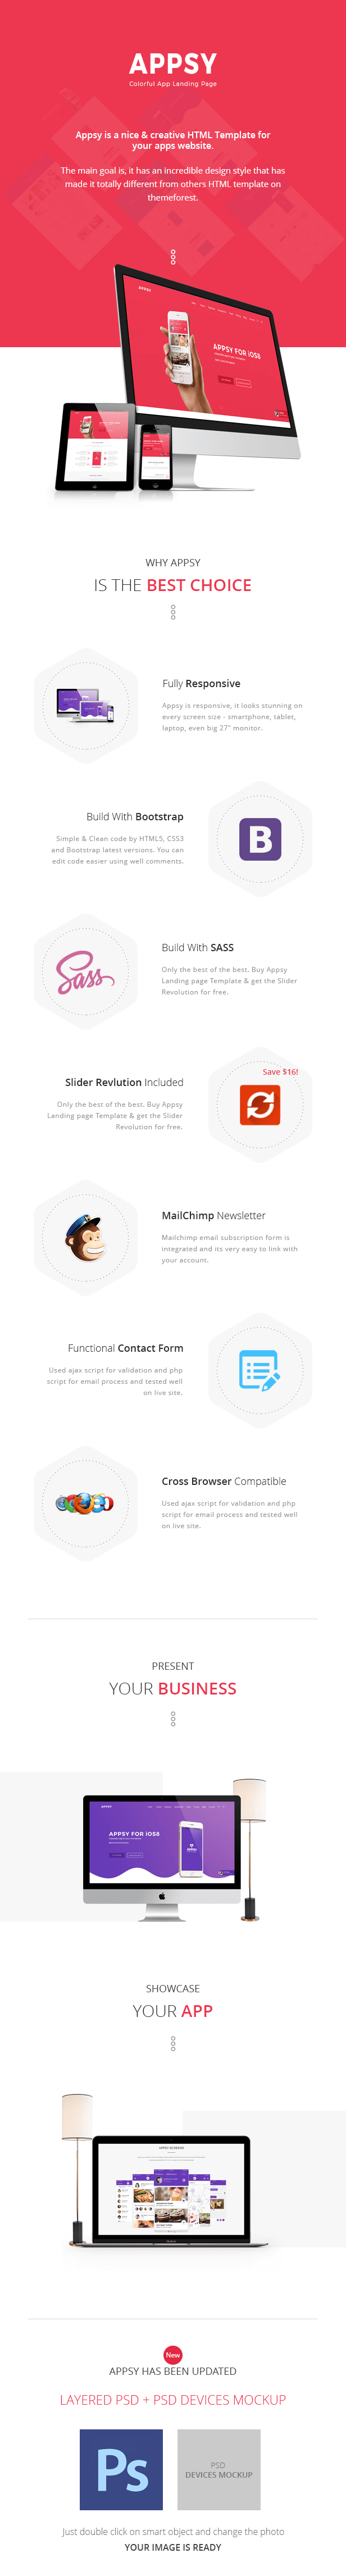 APPSY - Colorful App Landing Page Template - 1